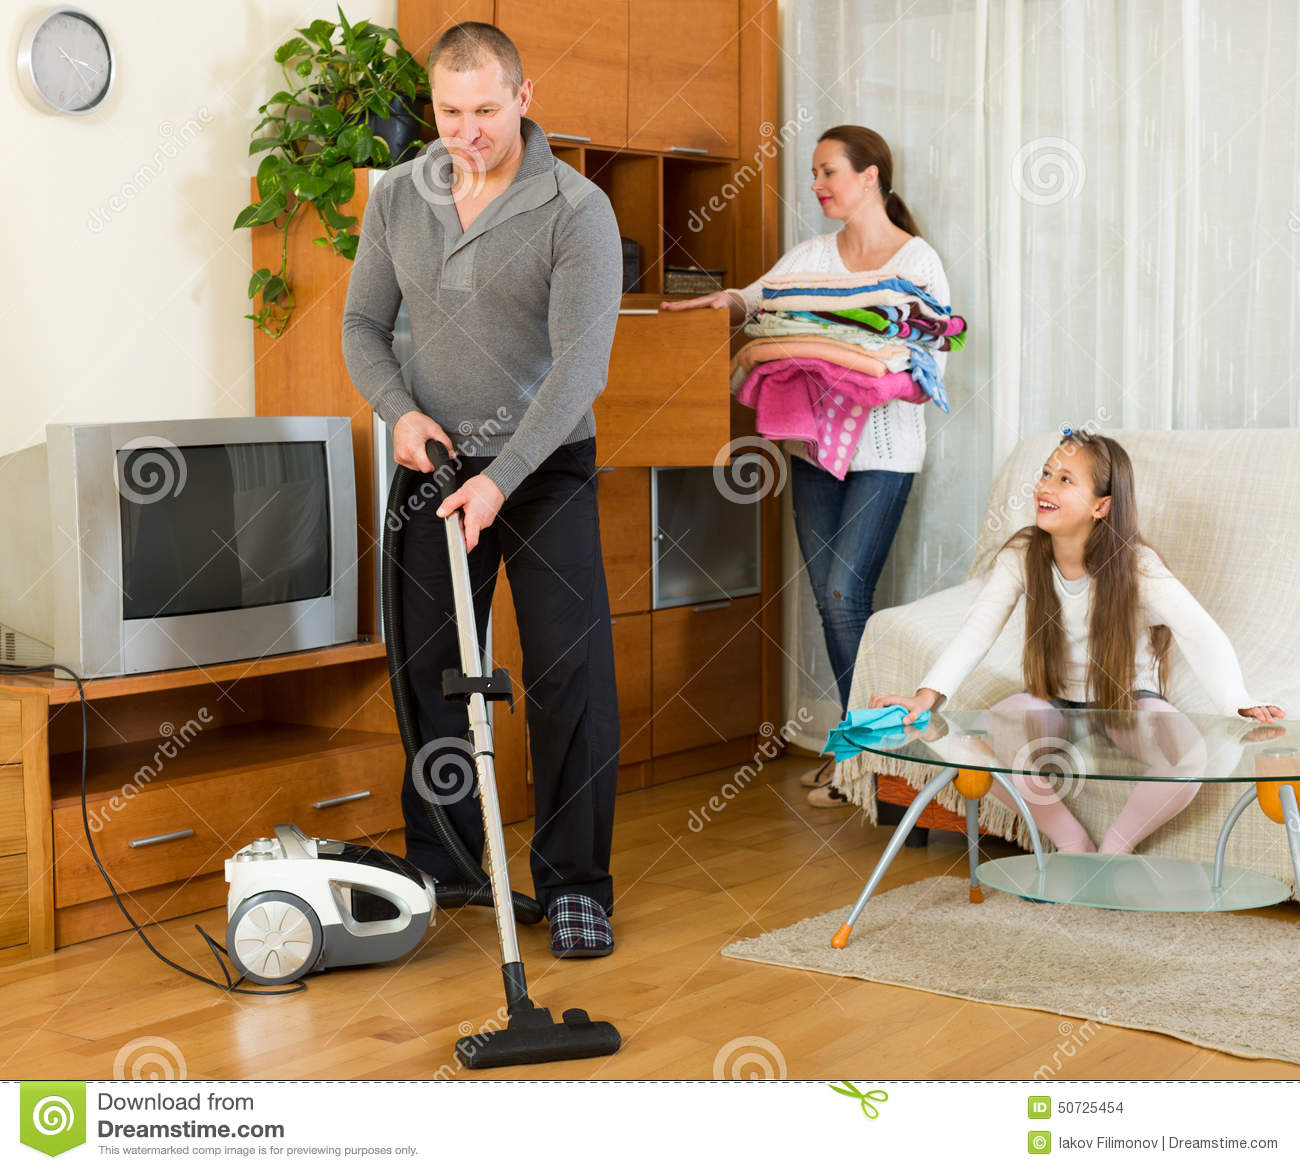 Family Of Three Tidying Up A Room Stock Photo Image